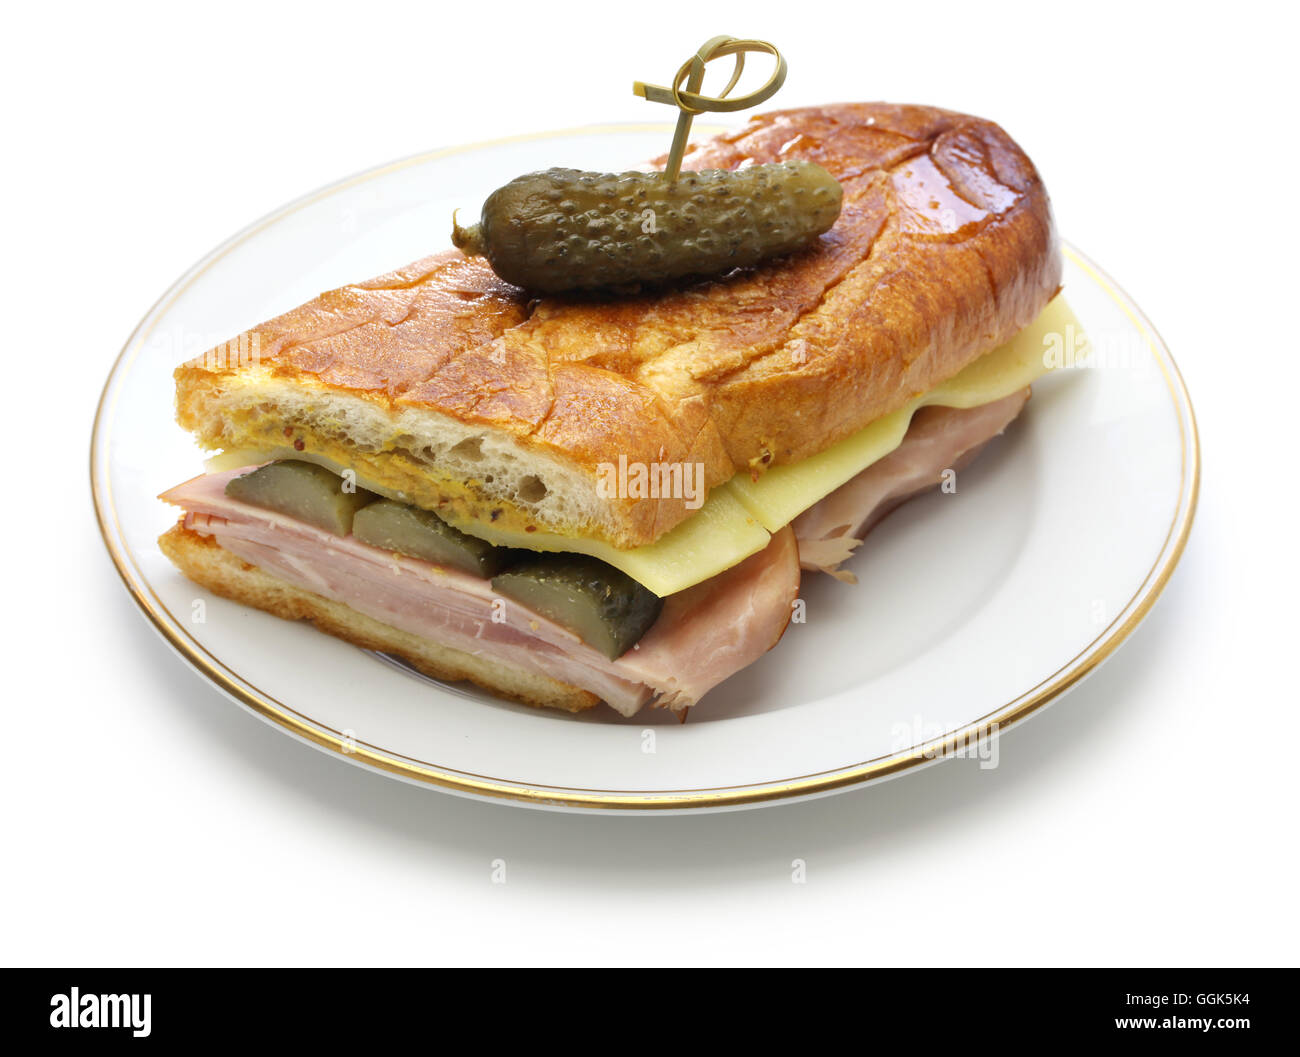 cuban sandwich, cuban mix, ham and cheese pressed sandwich isolated on white background - Stock Image